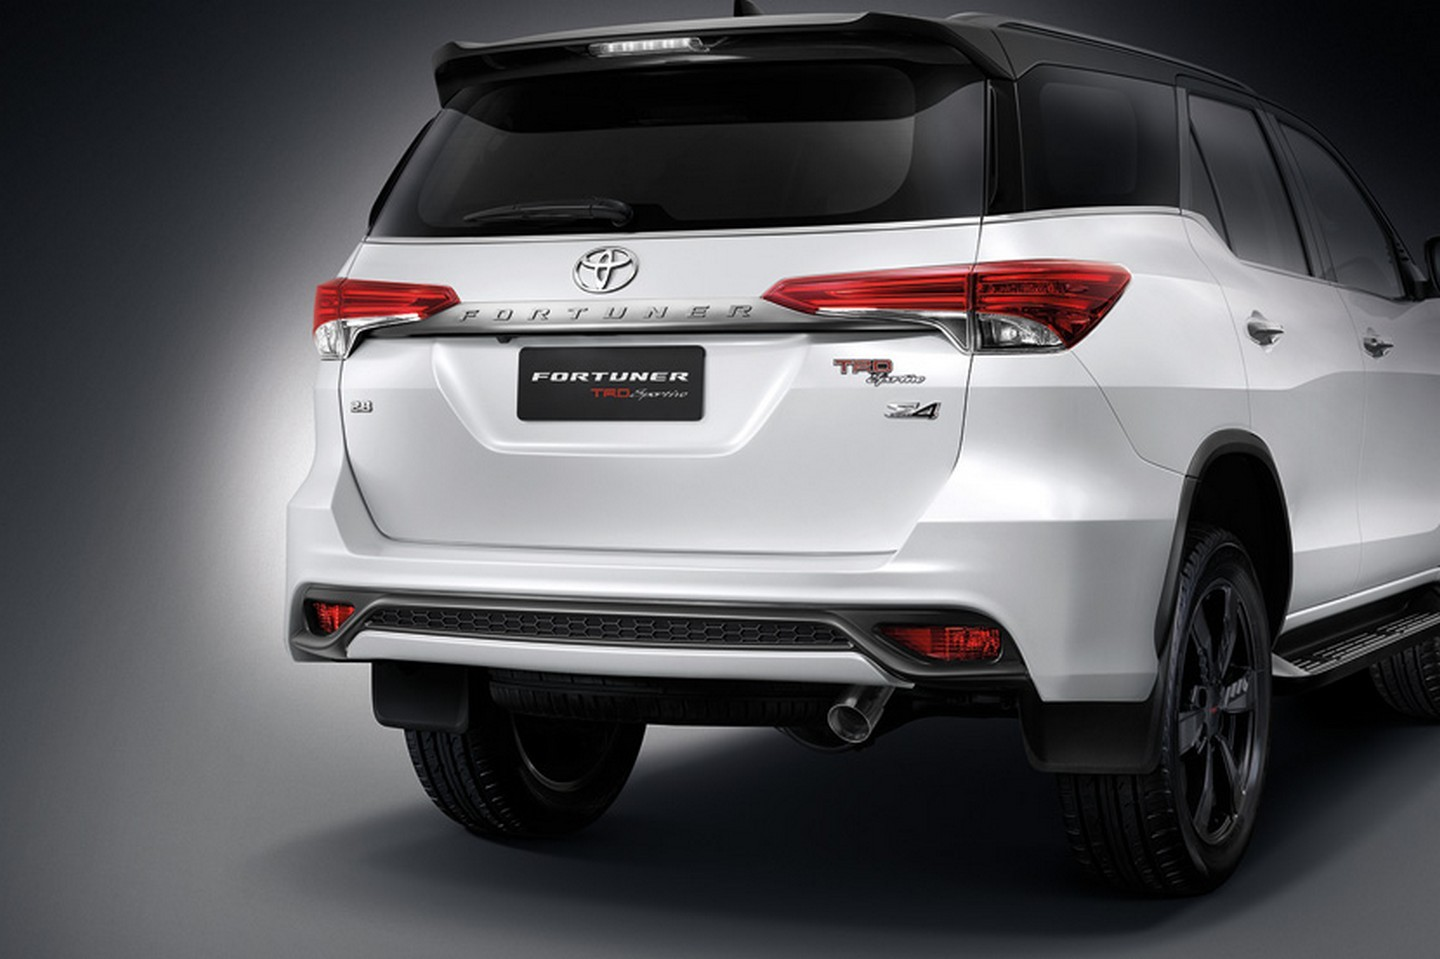 new toyota agya trd sportivo g a/t fortuner is a hilux suv with